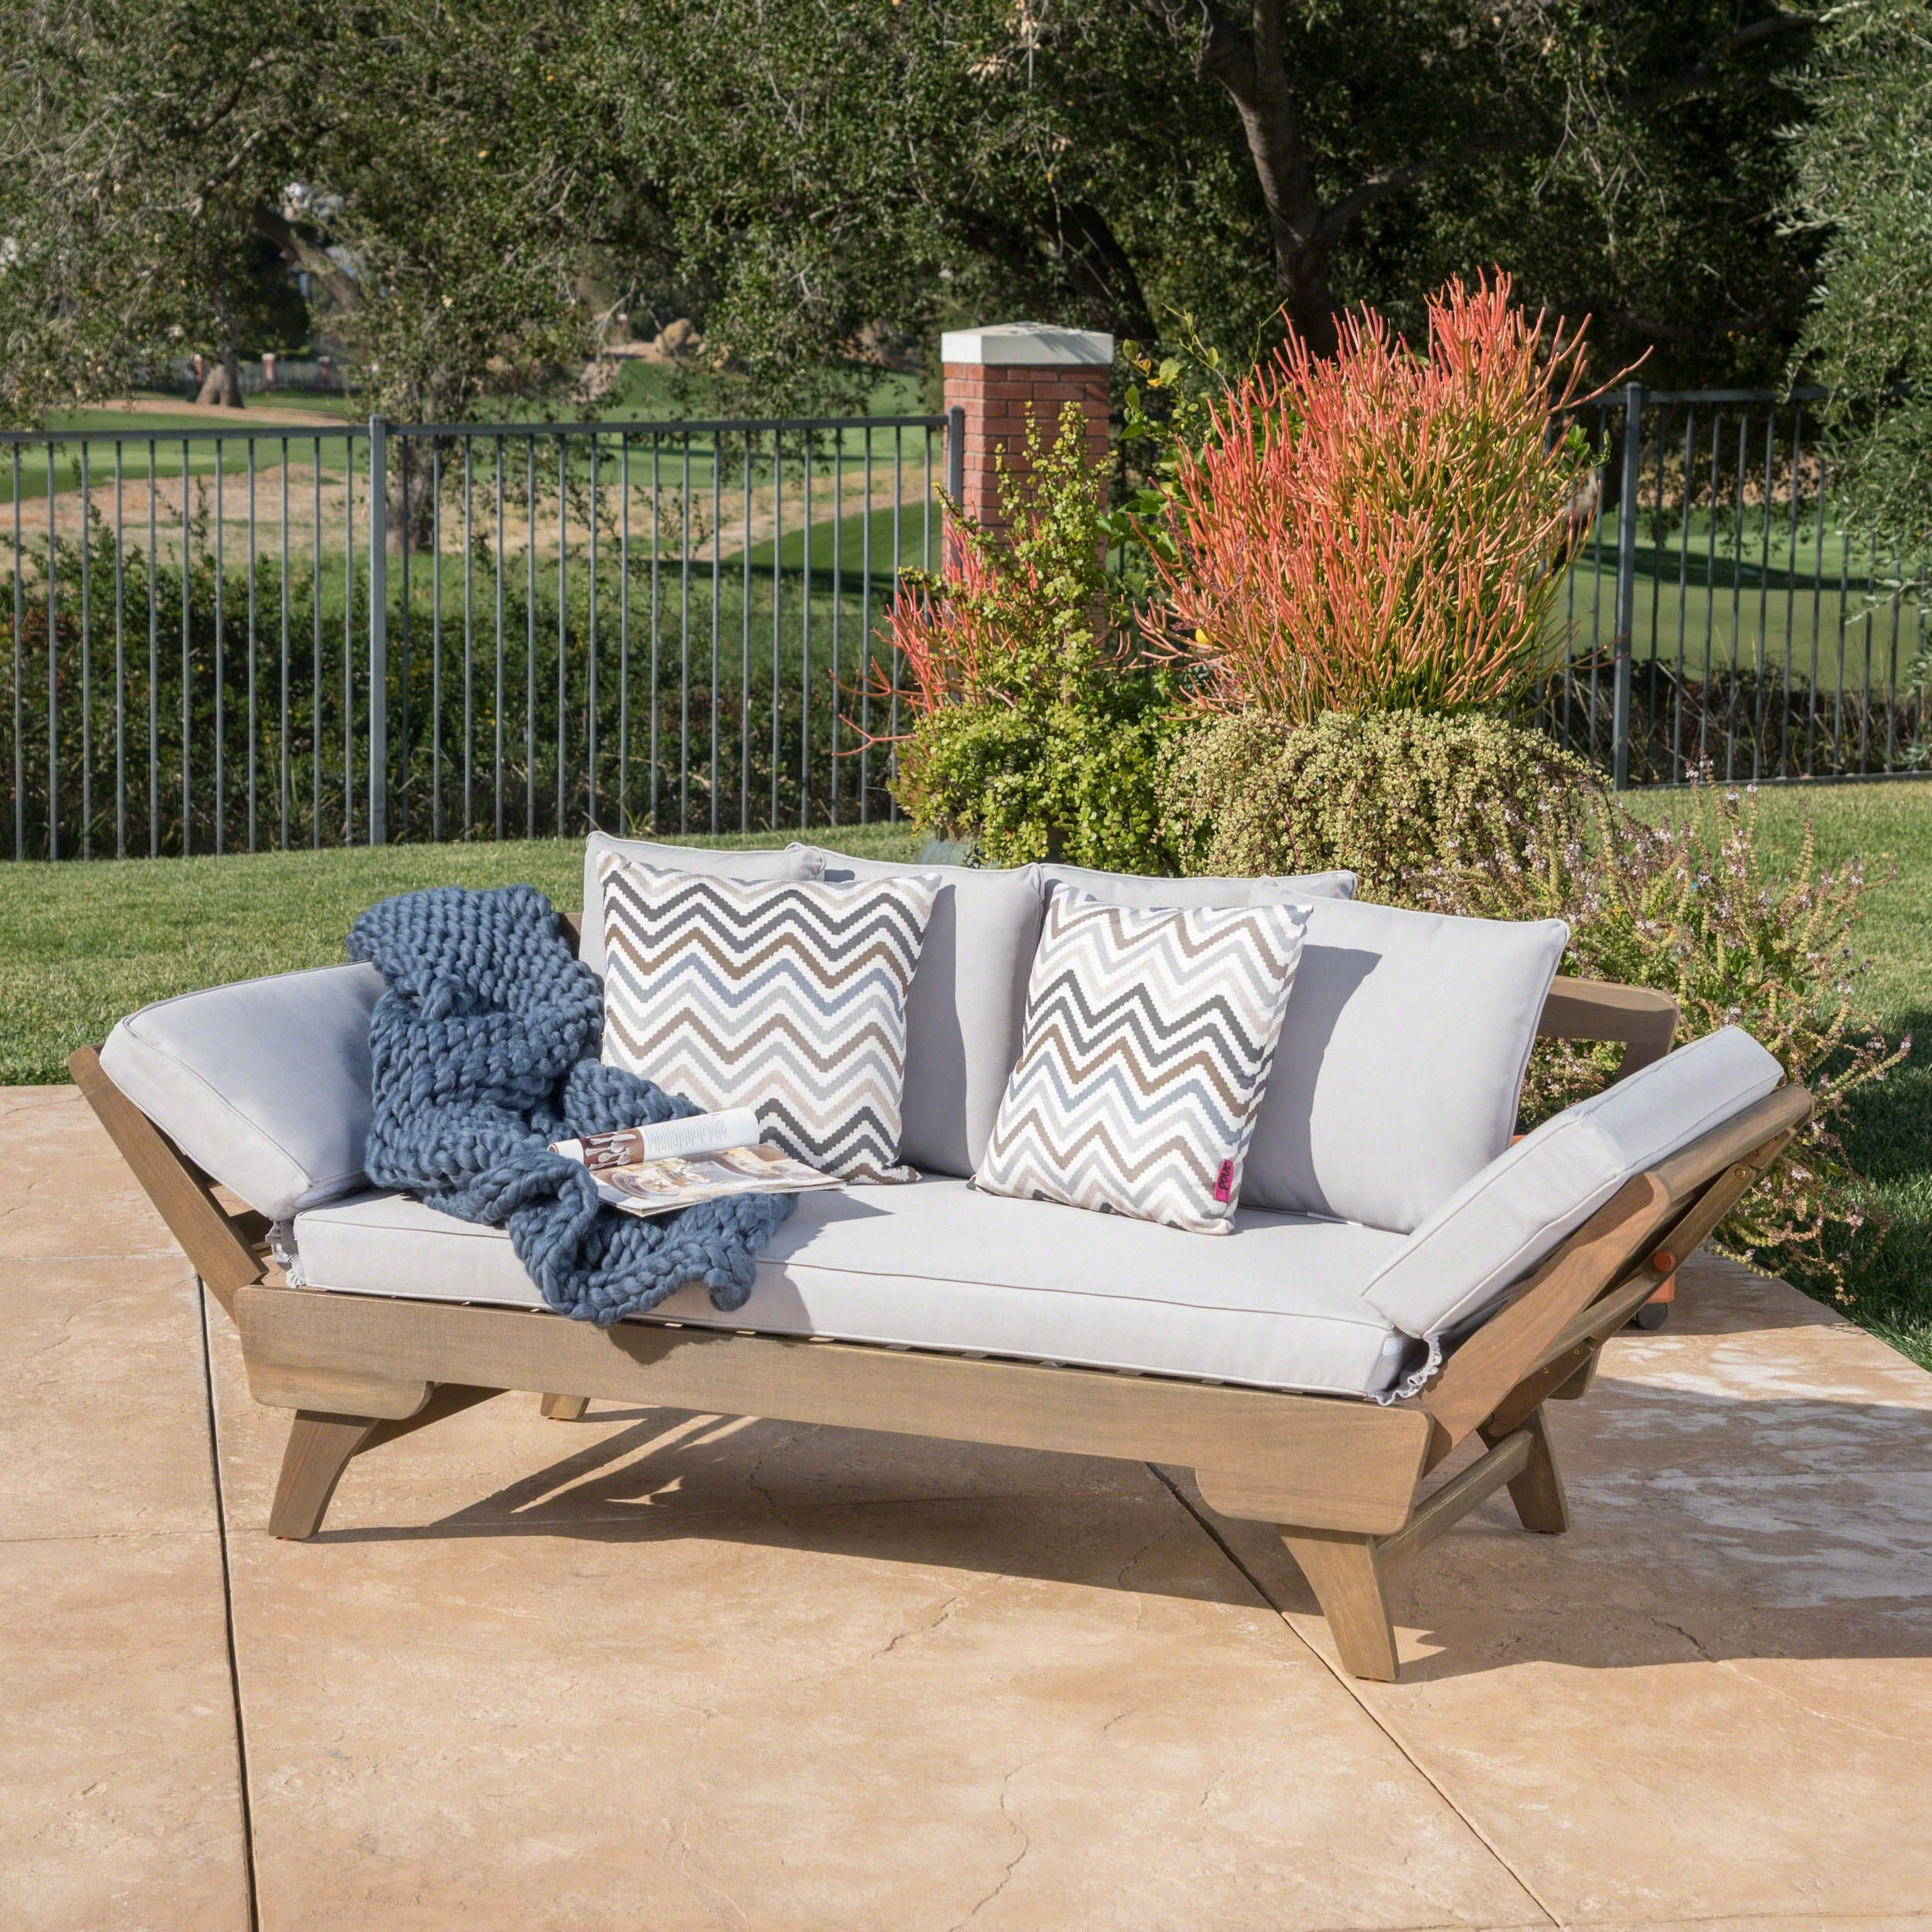 s outdoor g island bed the patio fall daybed bright swing sullivan swings